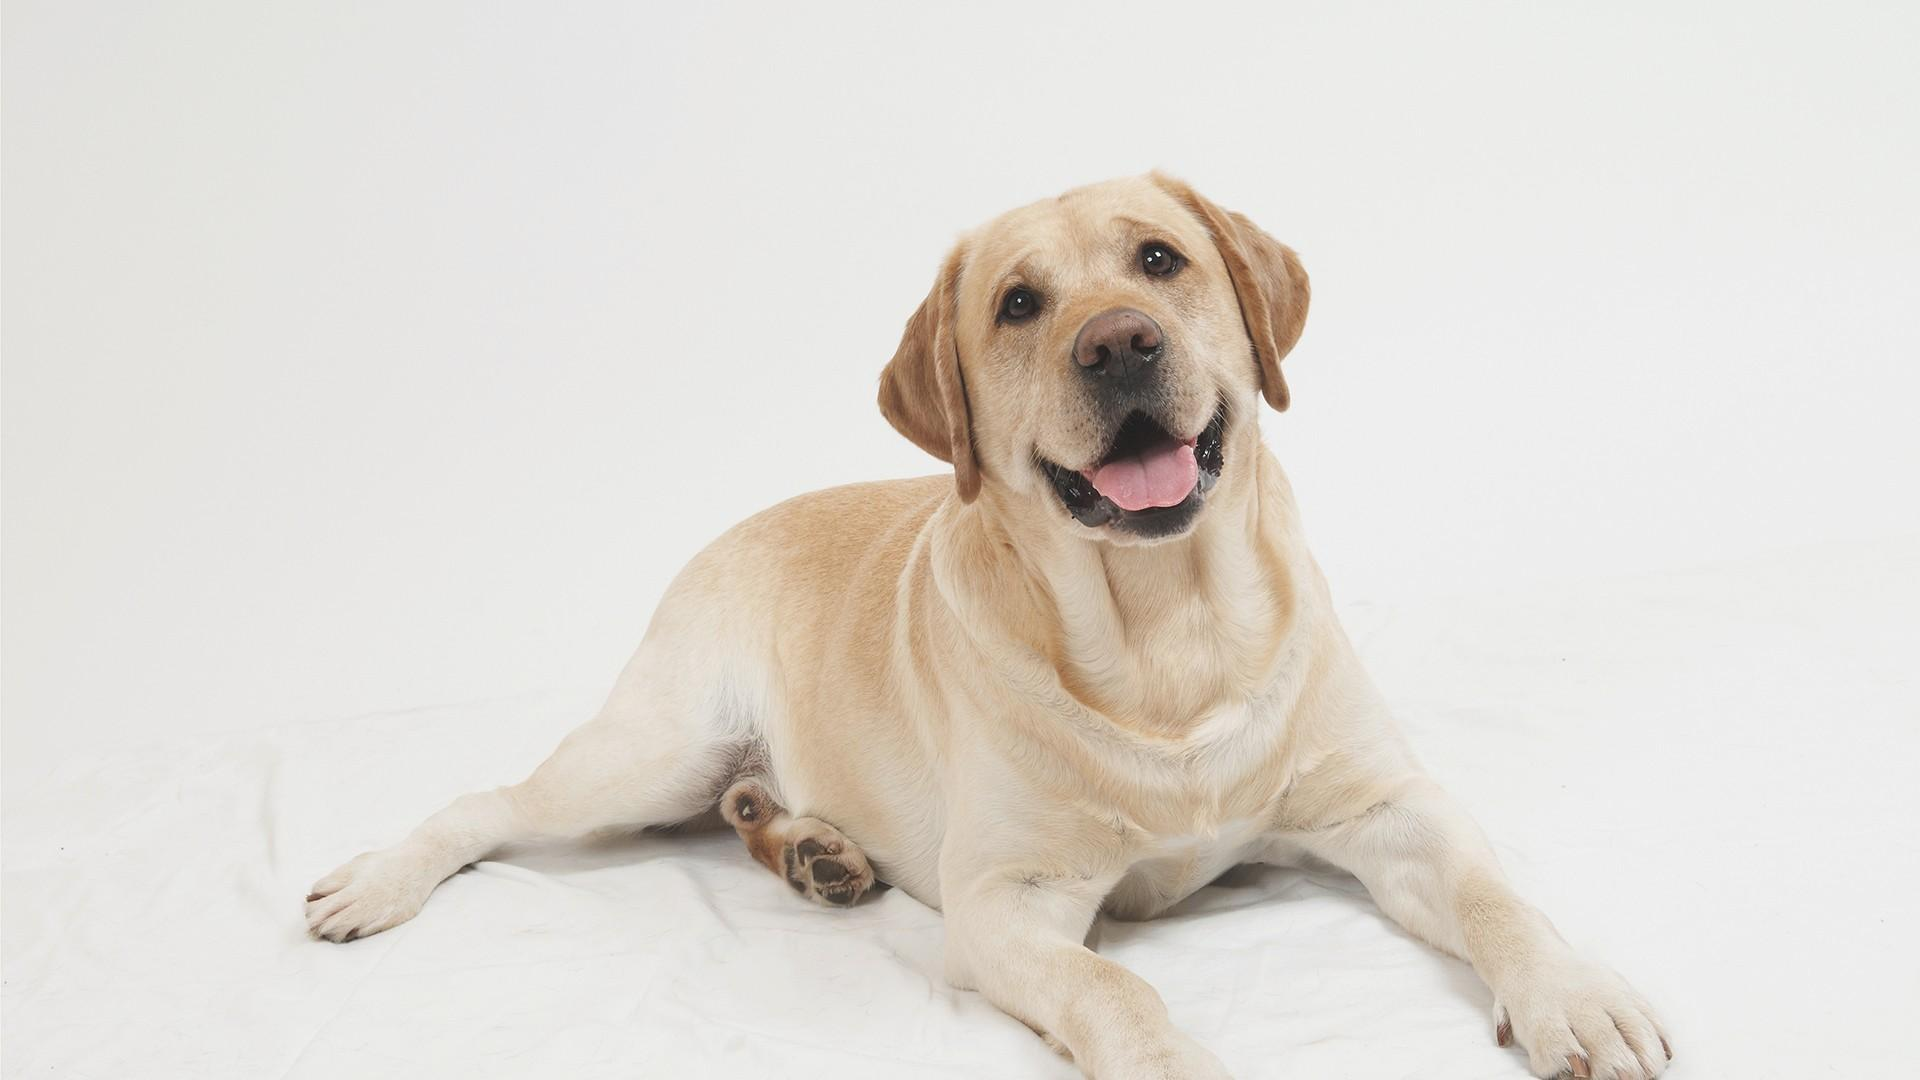 PNG HD Dogs - 123363